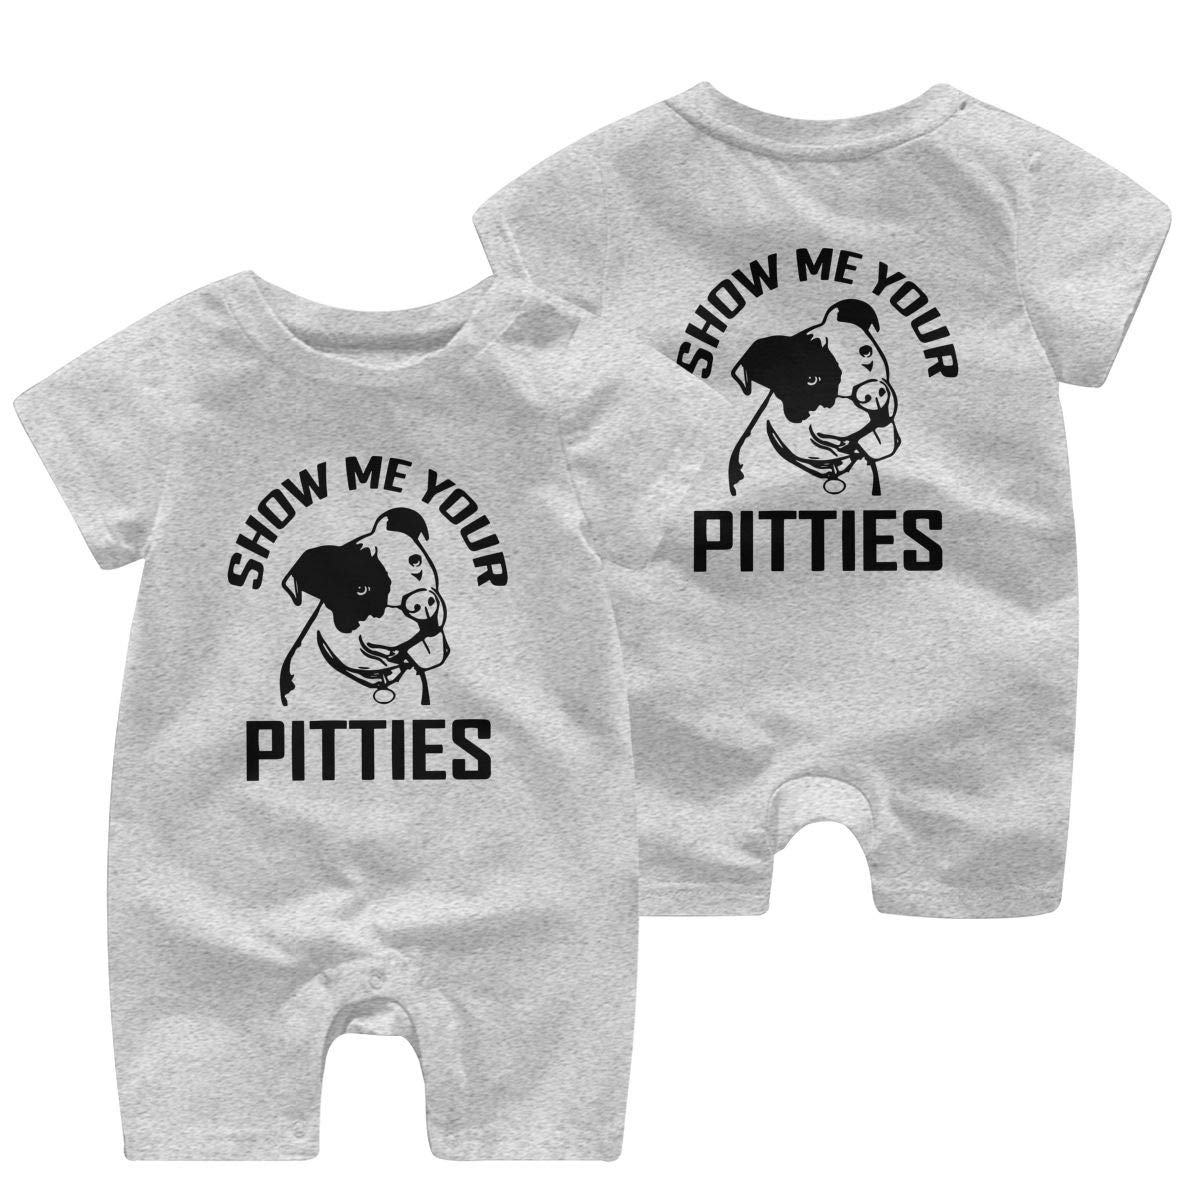 UGFGF/&3 Show ME Your Pitties Funny Pitbull Baby Girl Short Sleeve Romper Jumpsuit Jumpsuit 0-24 Months